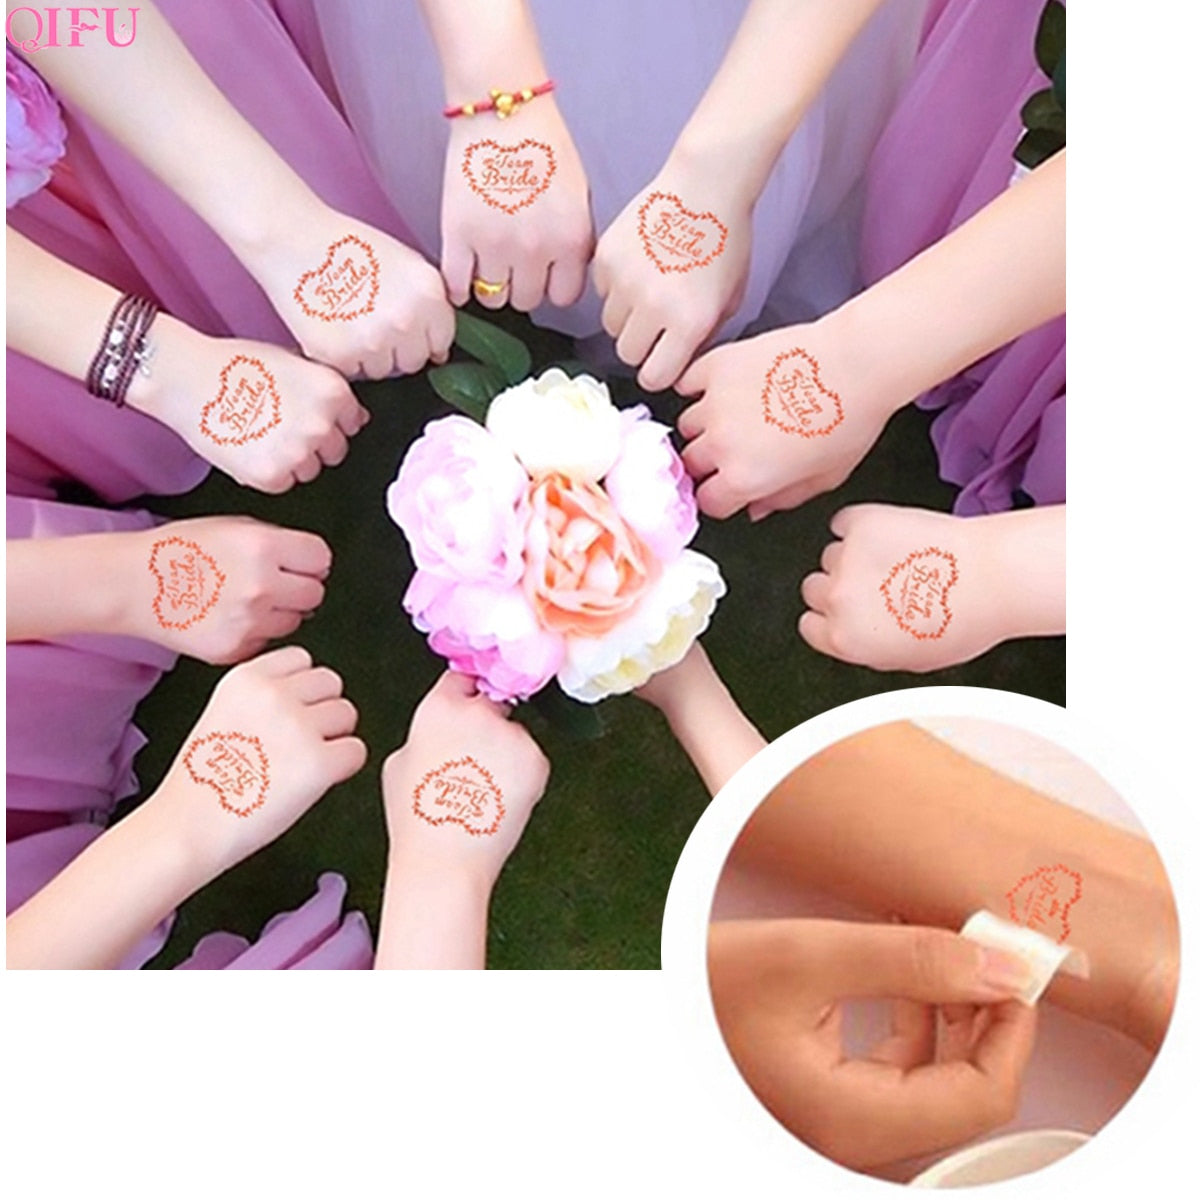 20 pcs Team Bride Temporary Tattoo Set for Photo Staging